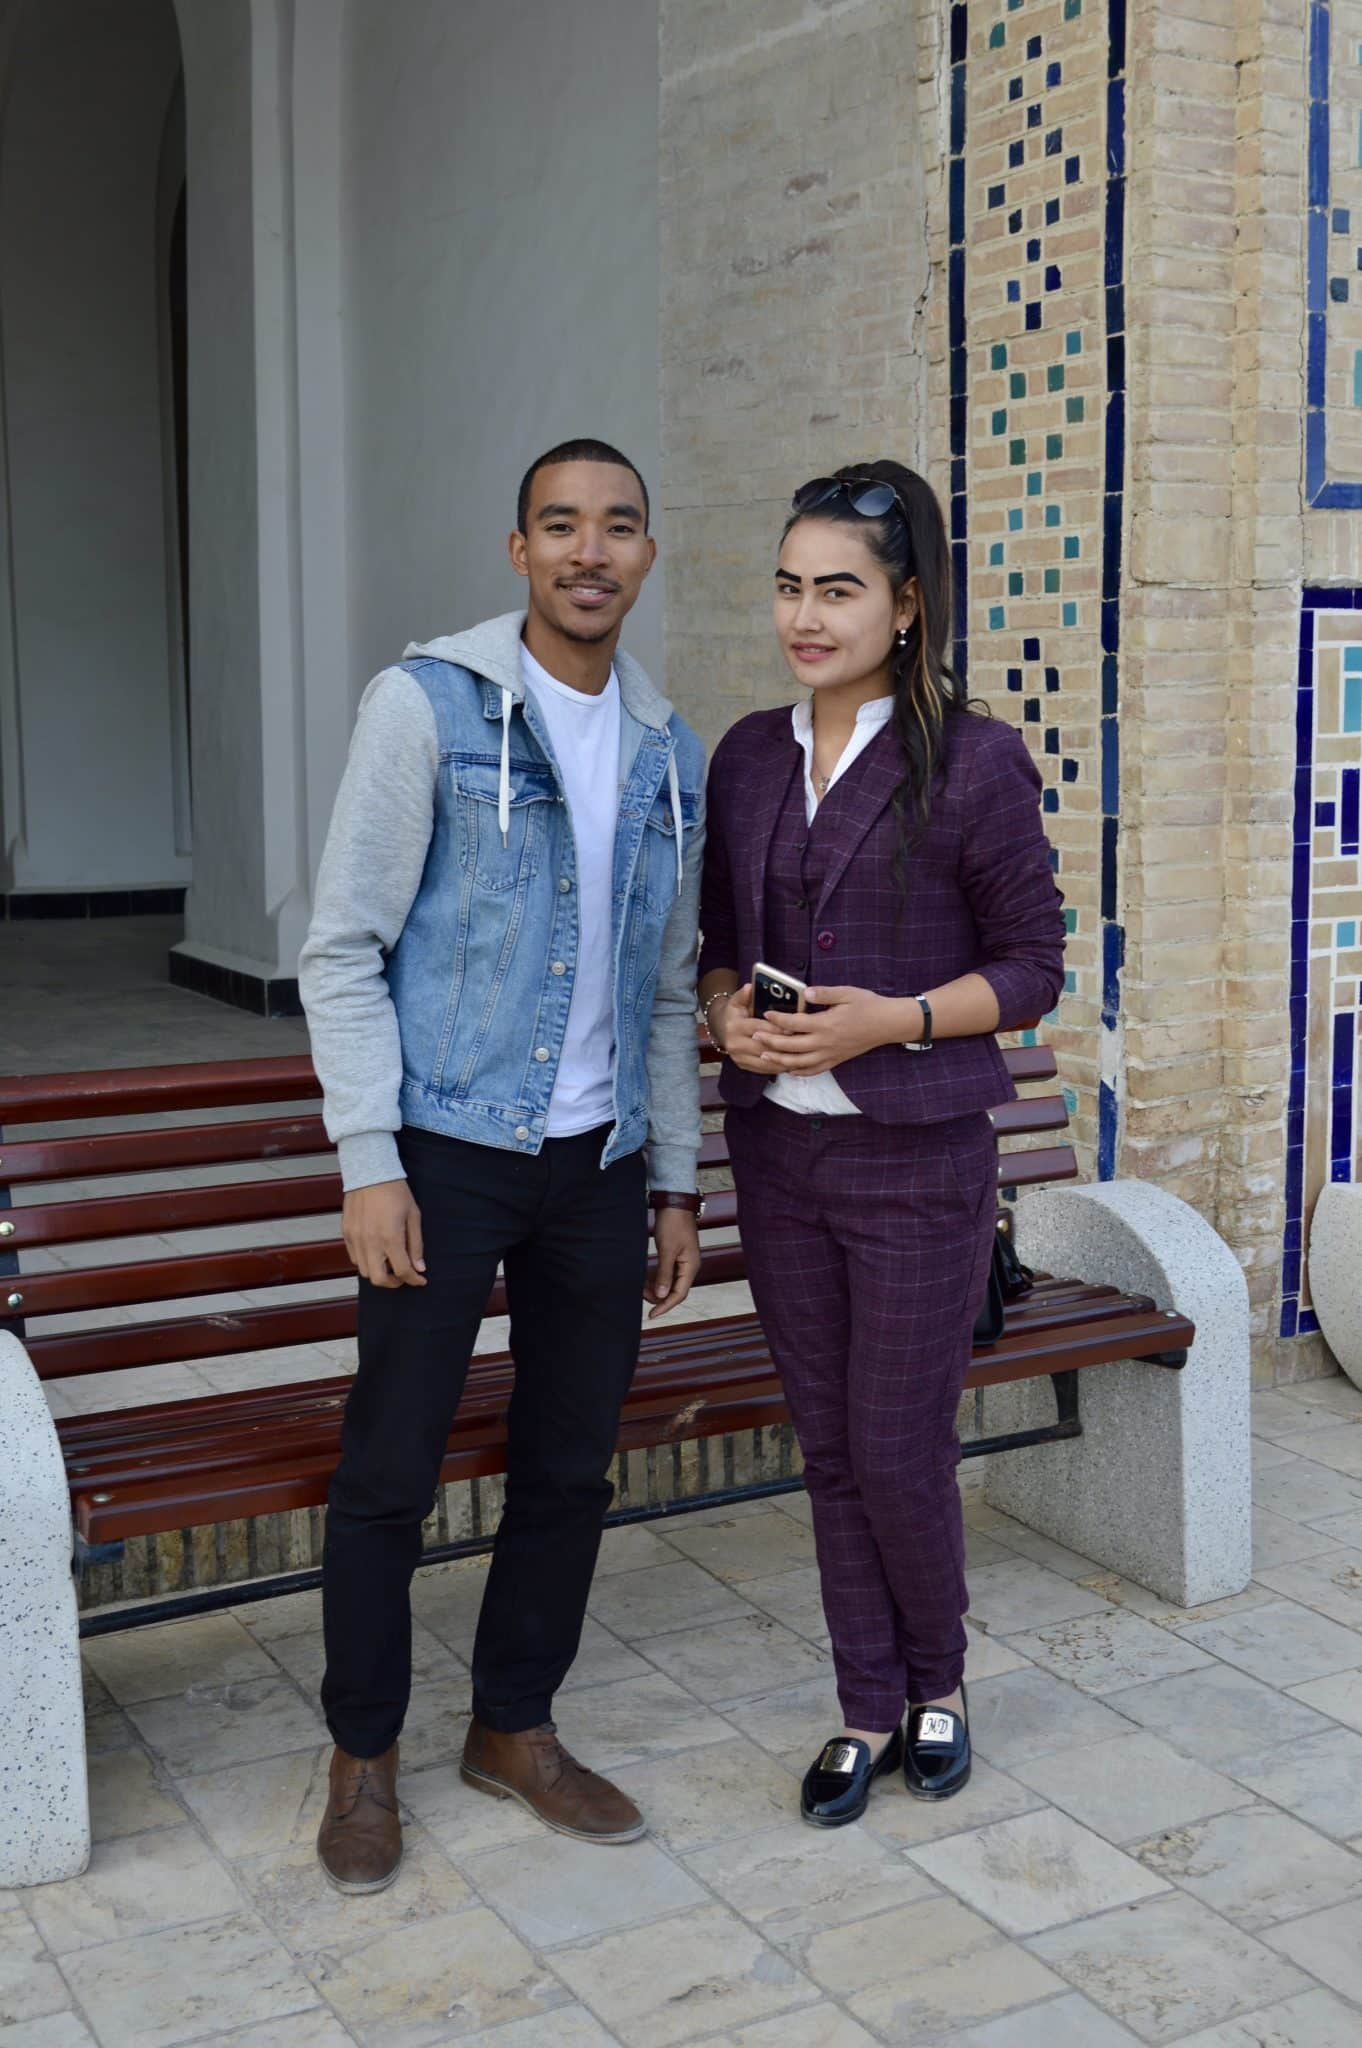 Tyreek with a woman in Uzbekistan